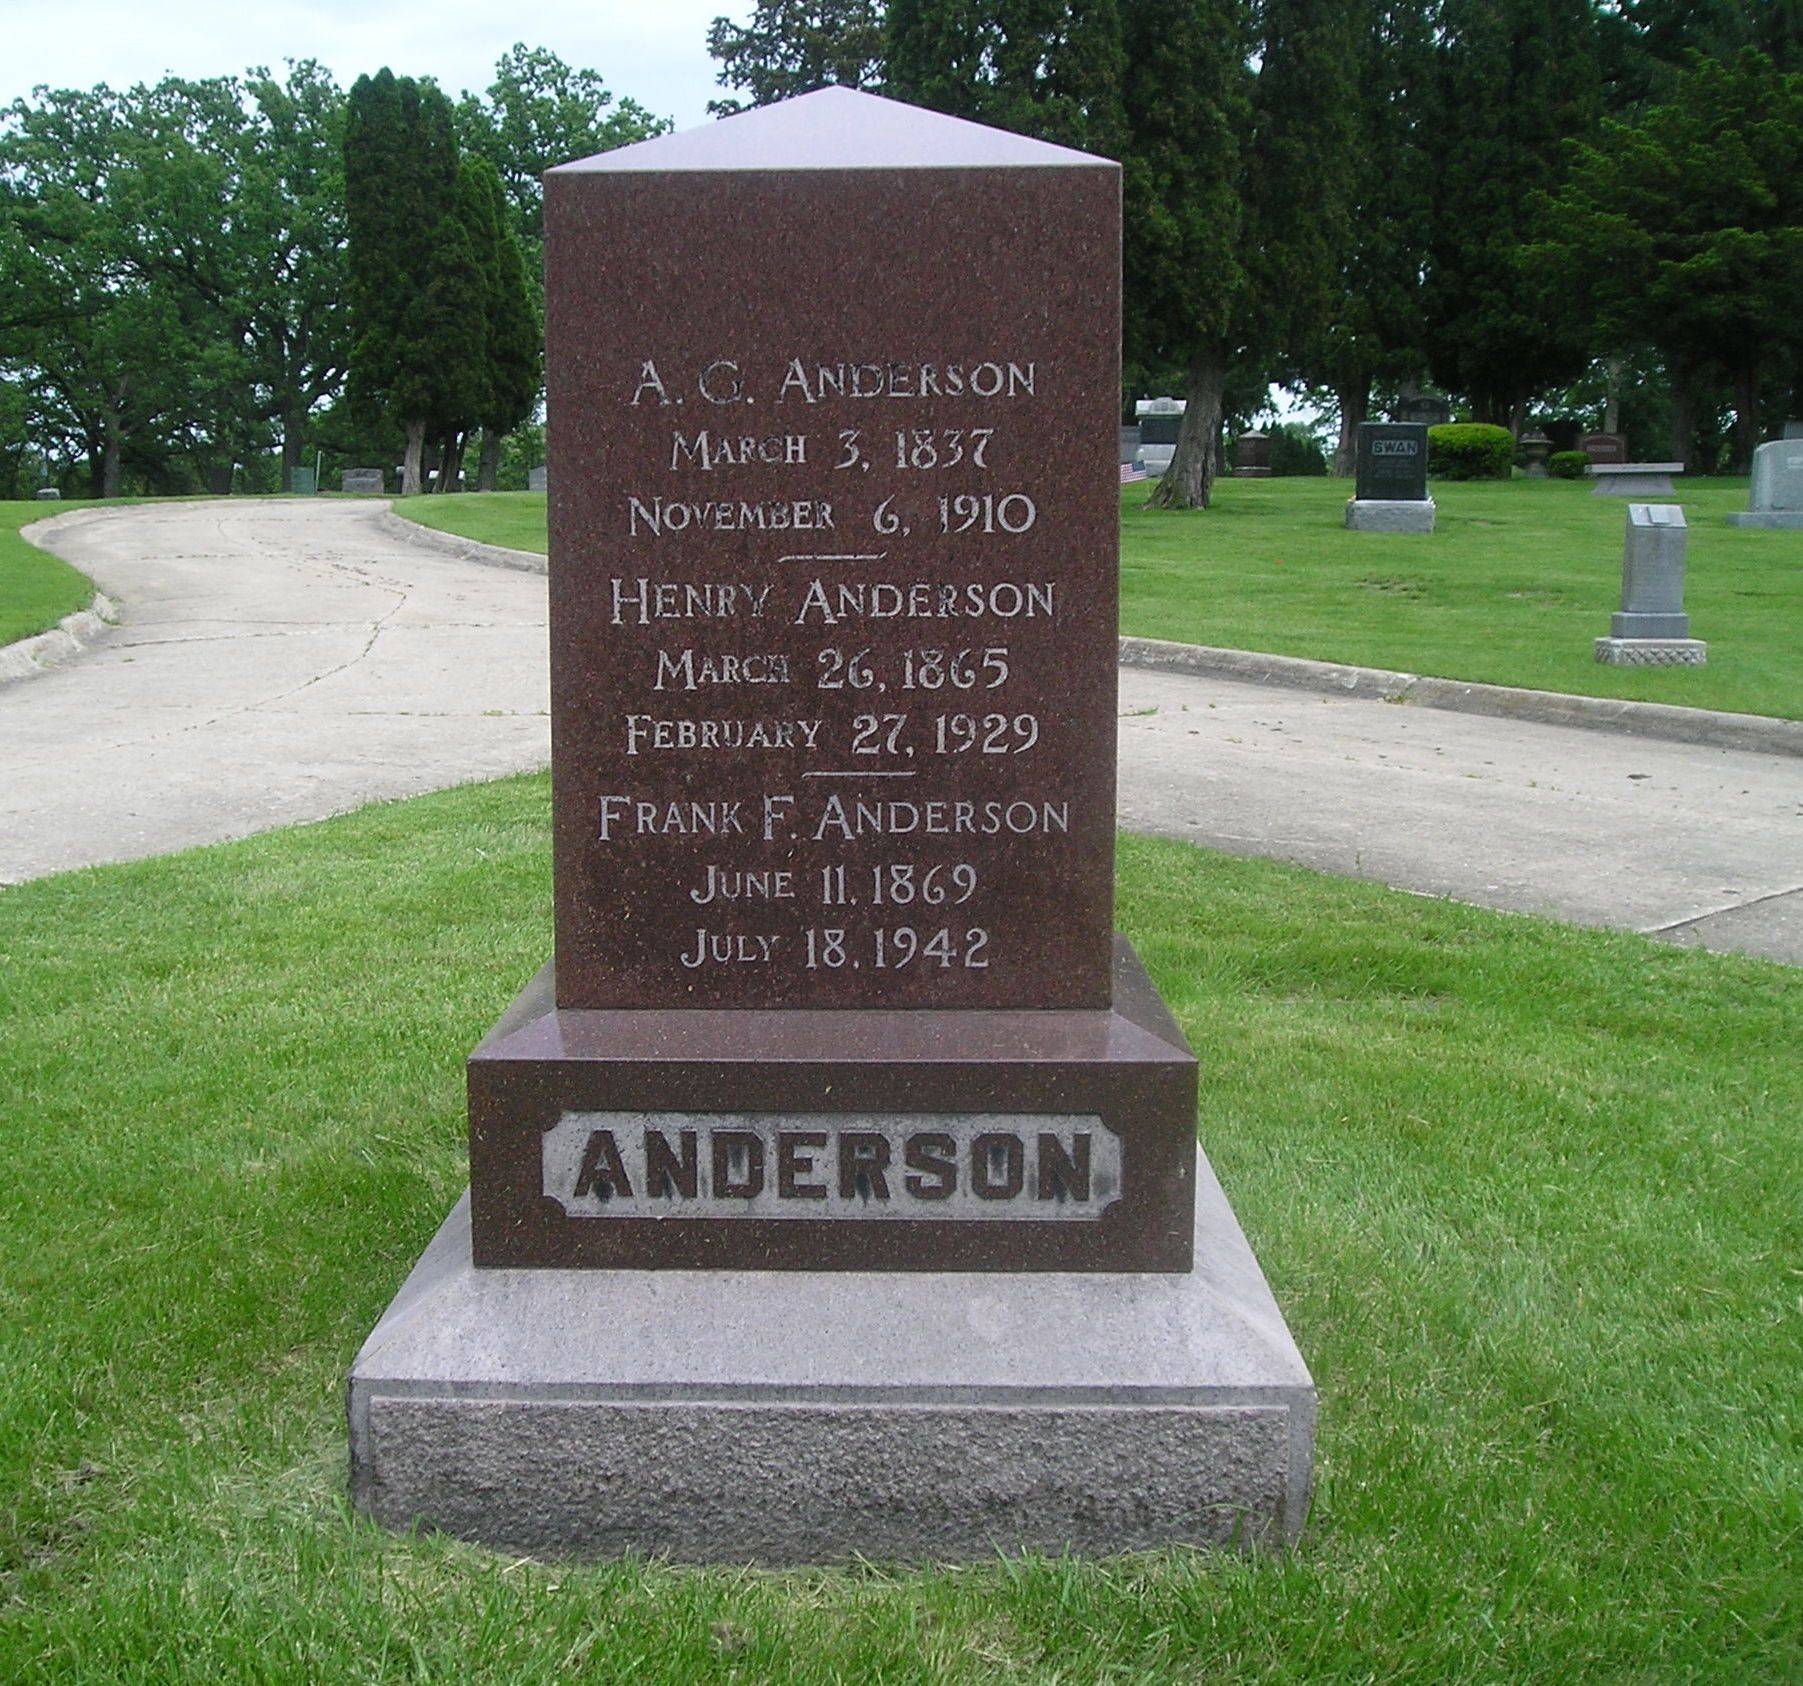 A. G. Anderson